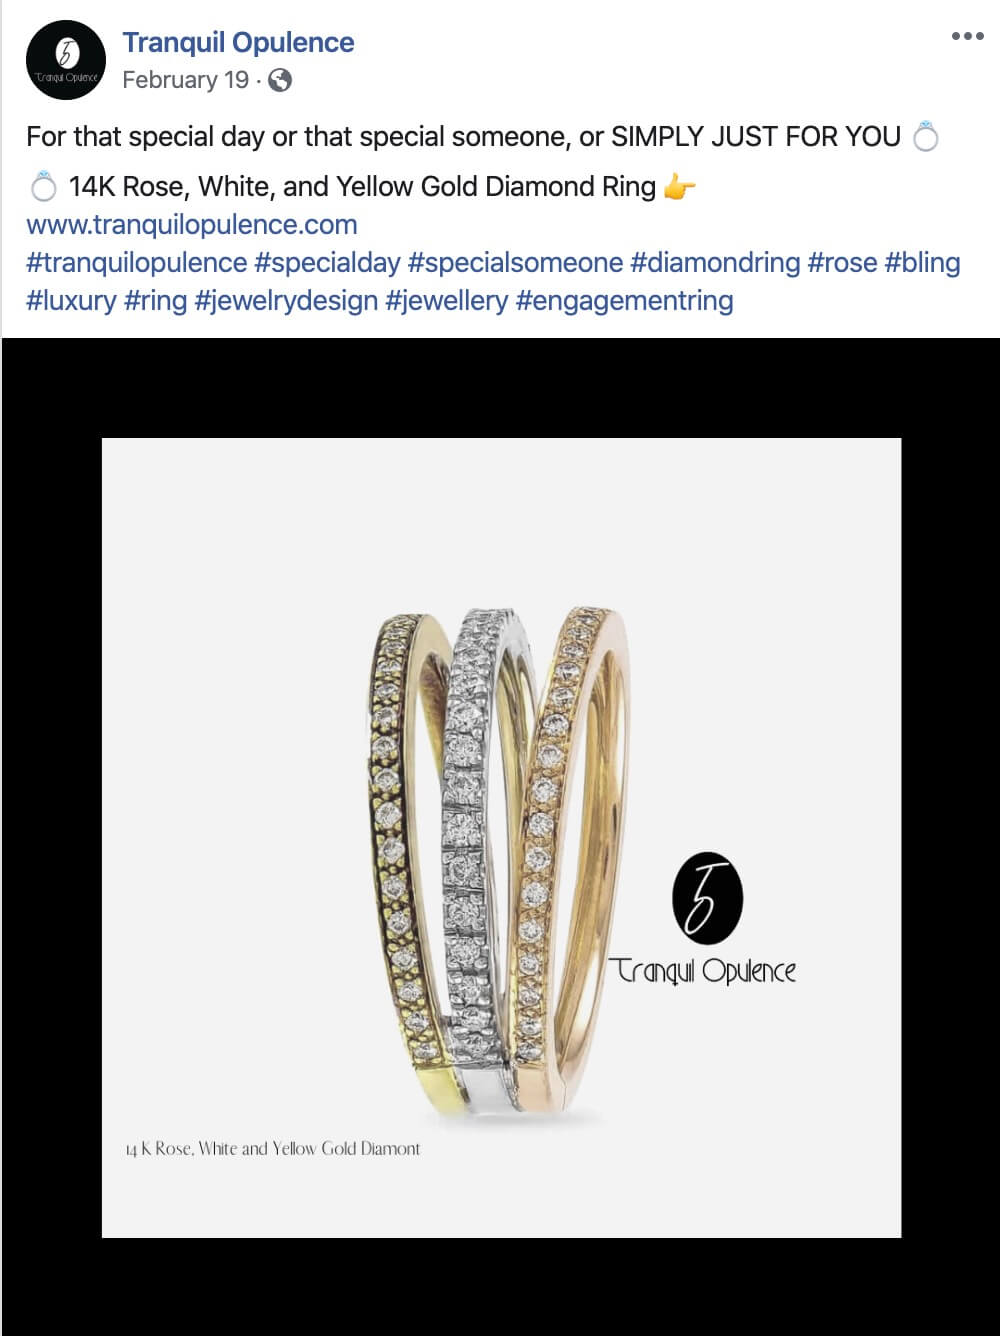 Social Media Management for Jewelry Company